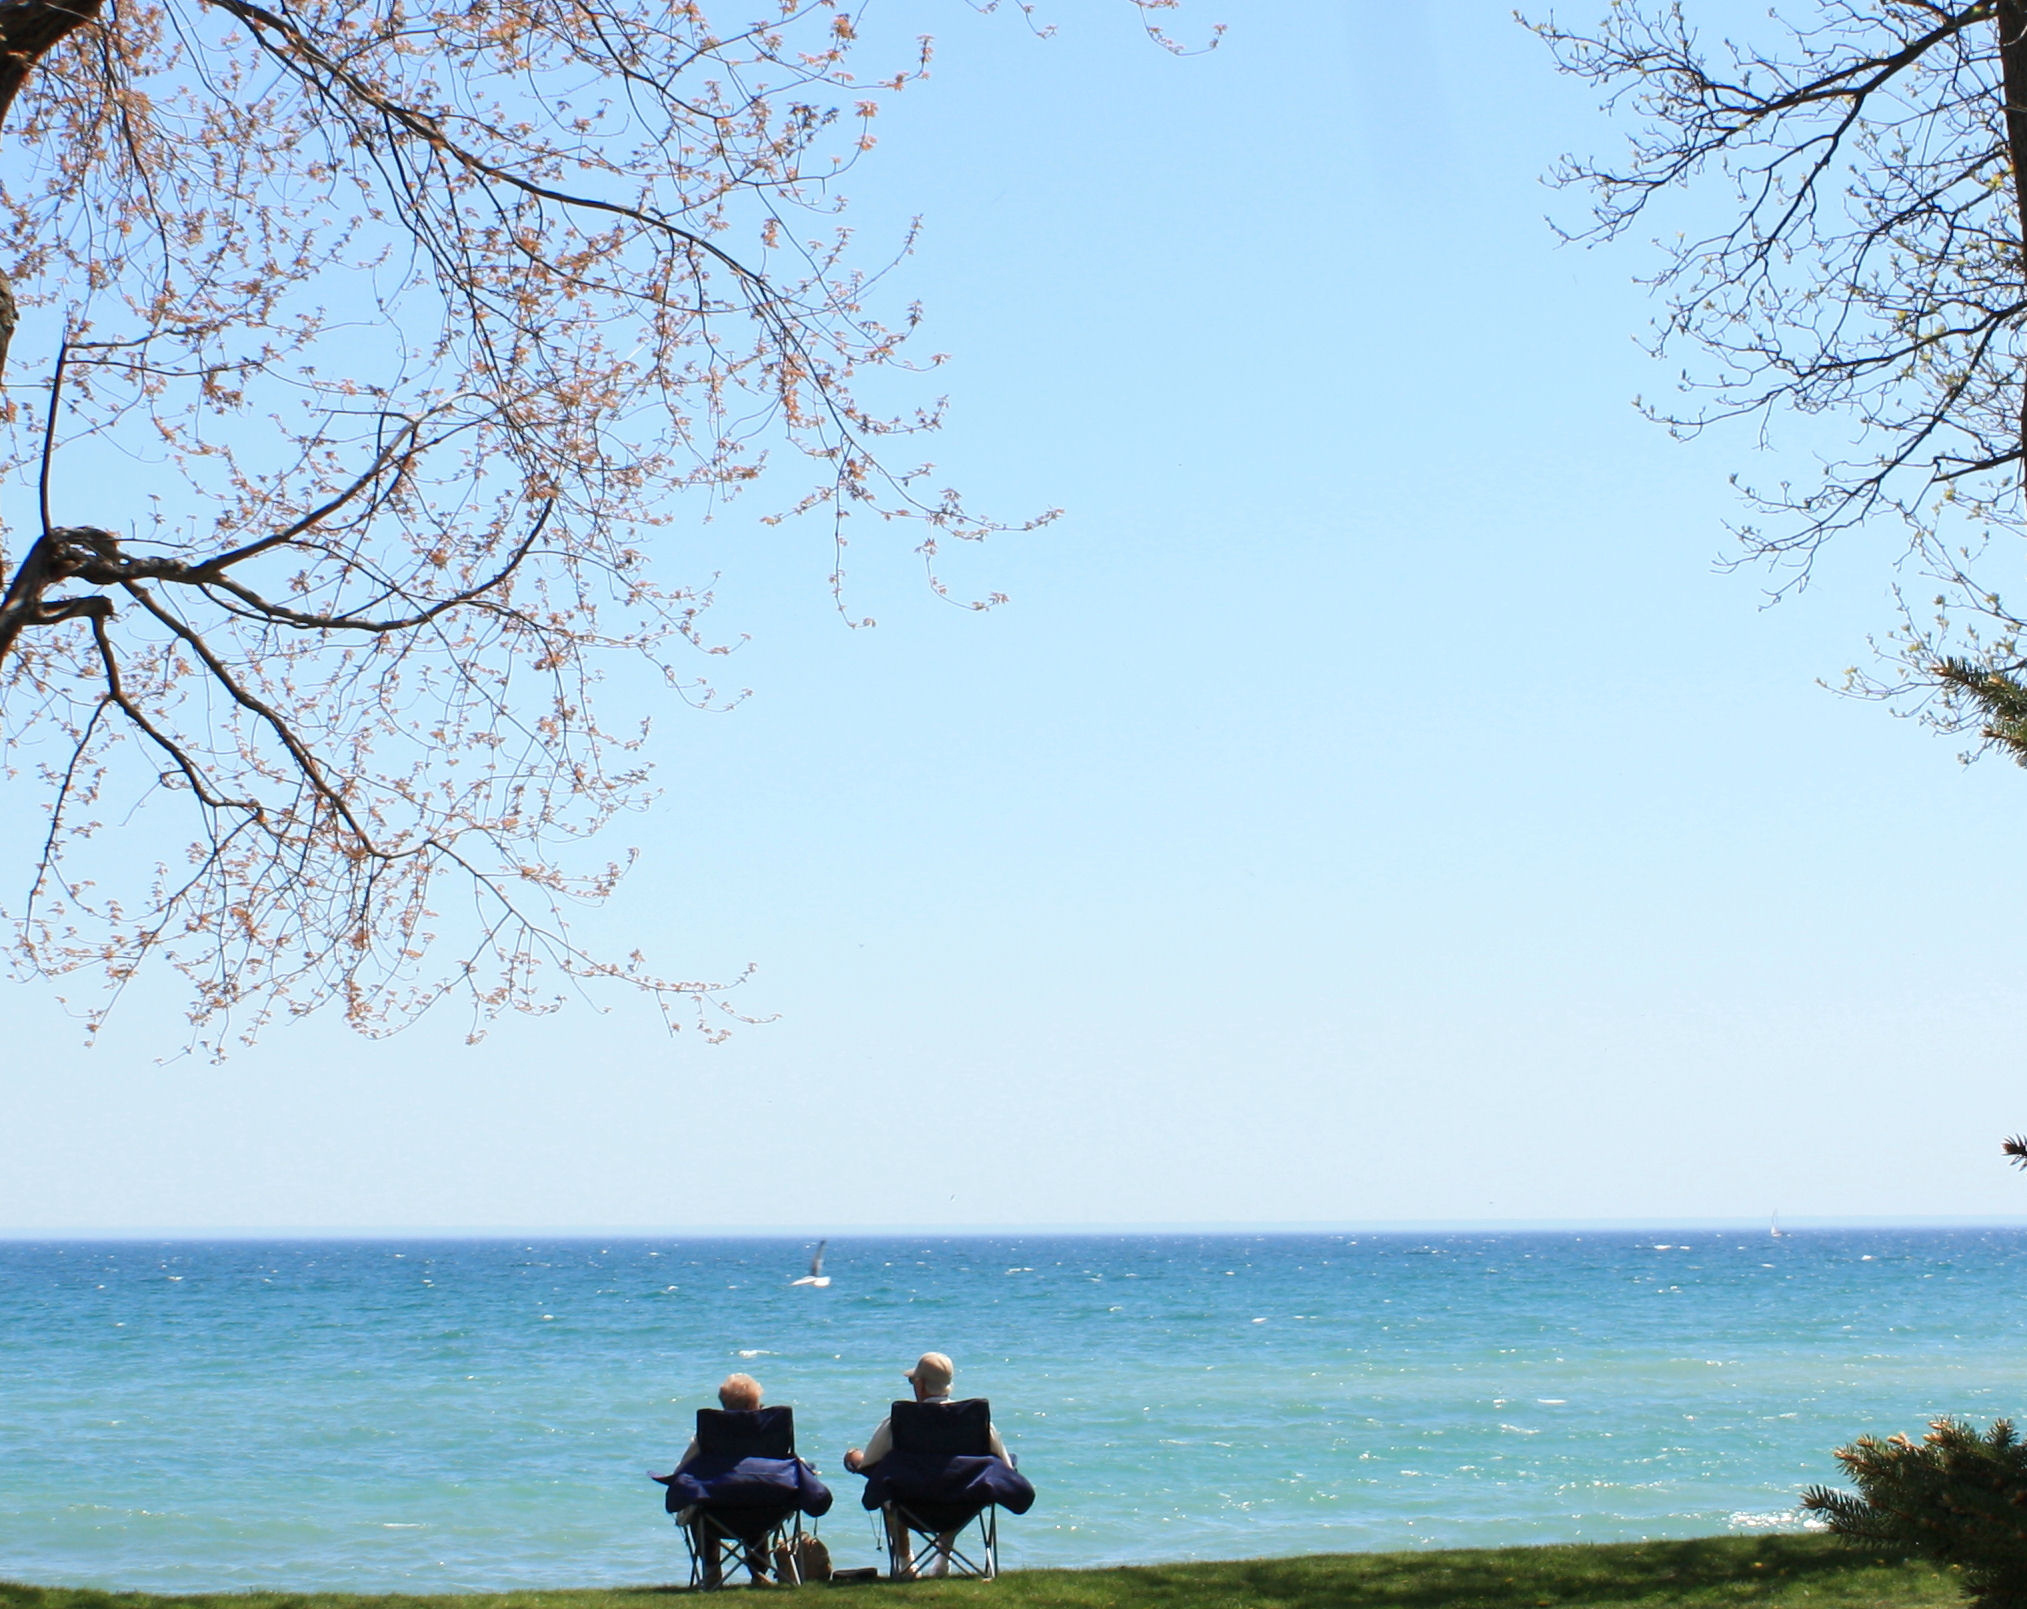 Couple sitting at Lake Ontario, Oshawa, Couple, Enjoying, Lake, Landscape, HQ Photo